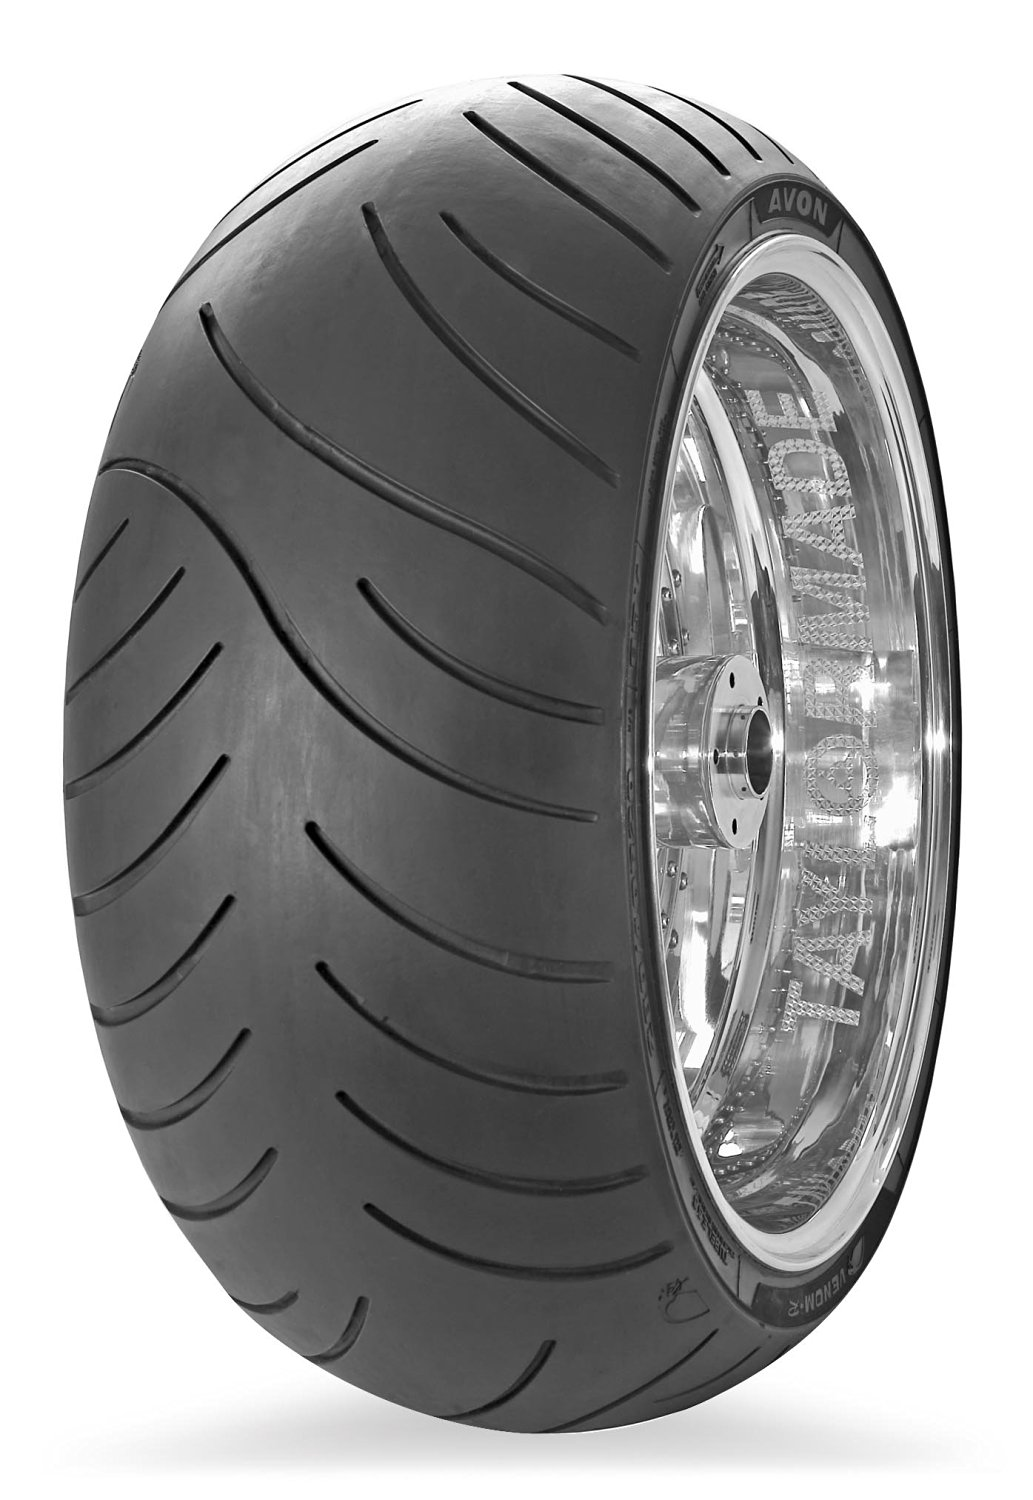 Avon Tyres Venom R Tire - Rear - 180/55R-18 , Position: Rear, Load Rating: 74, Speed Rating: V, Tire Size: 180/55-18, Rim Size: 18, Tire Type: Street, Tire Application: Sport, Tire Construction: Radial 4953913